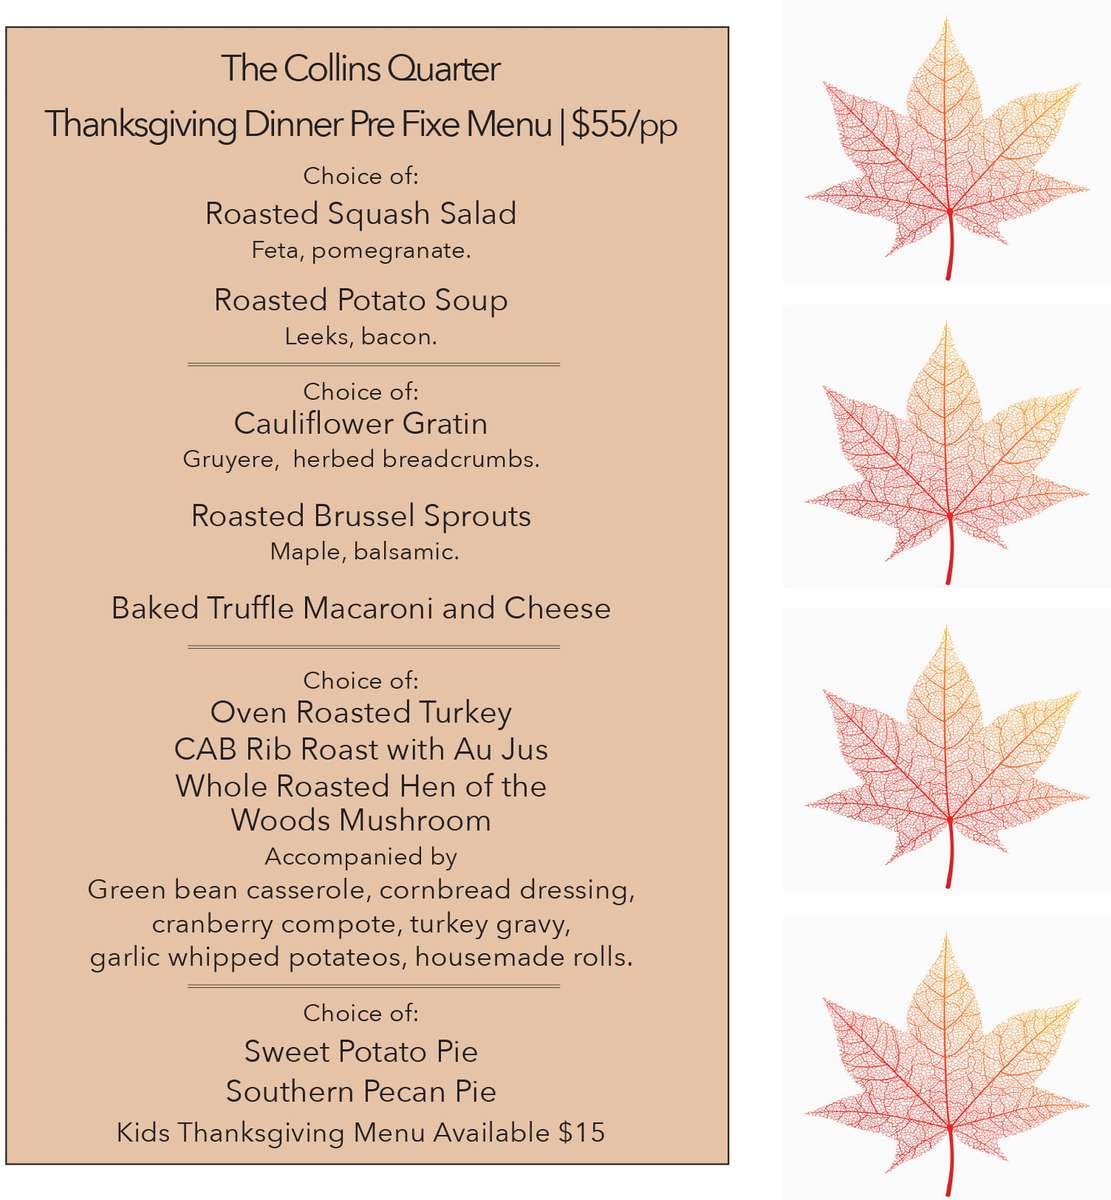 Thanksgiving Menu at The Collins Quarter